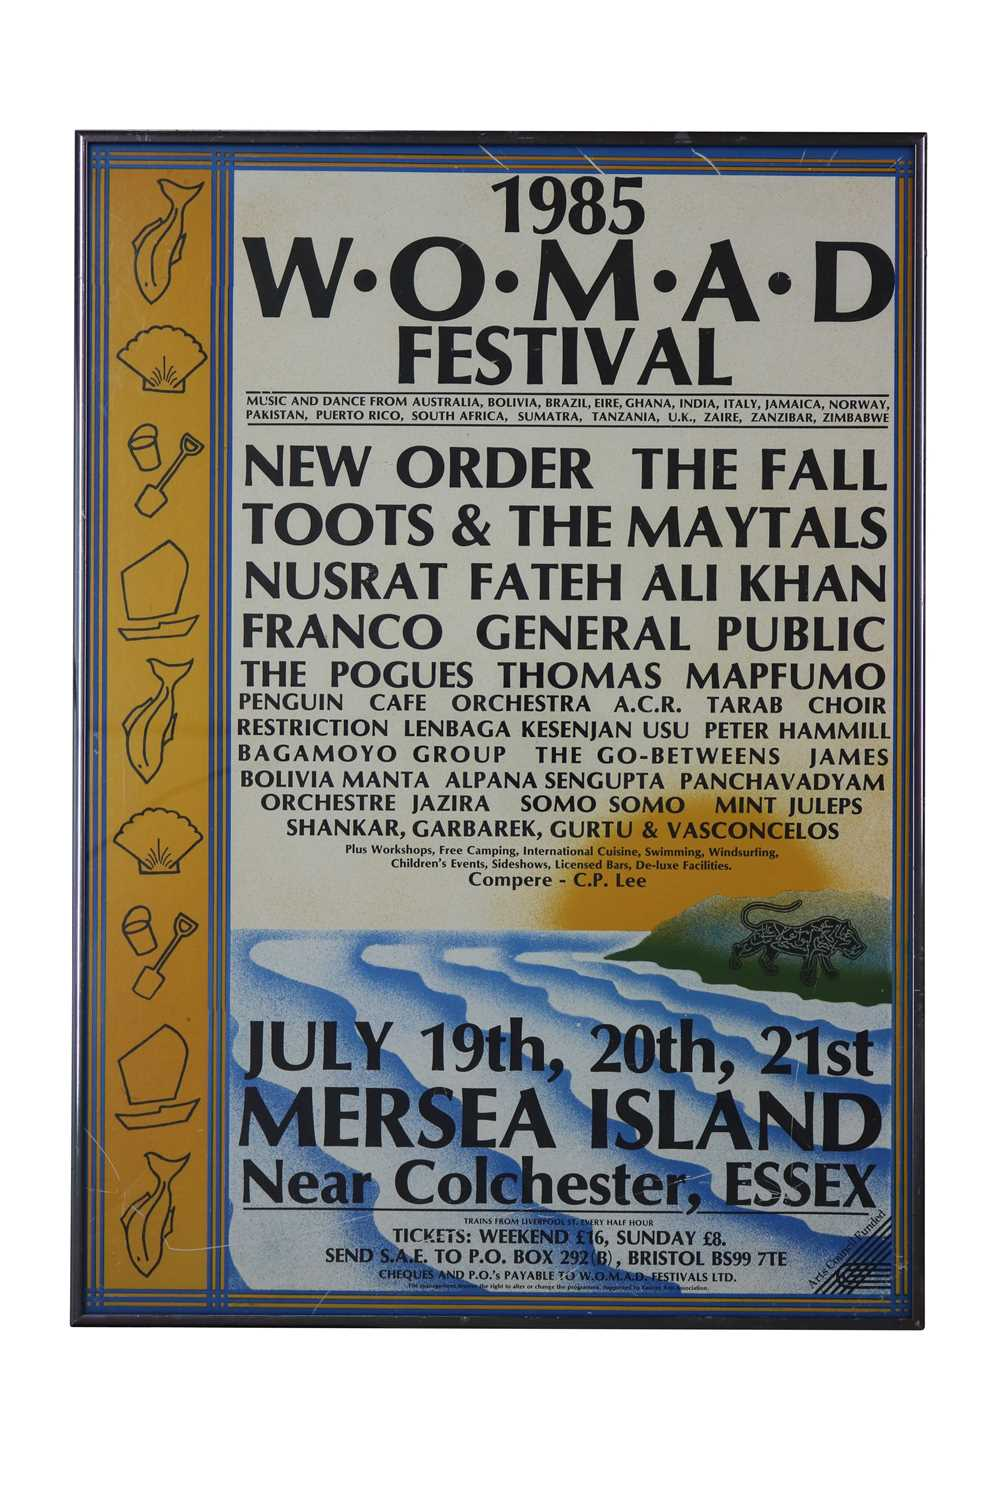 Lot 46 - NEW ORDER 1985 W.O.M.A.D. FESTIVAL POSTER